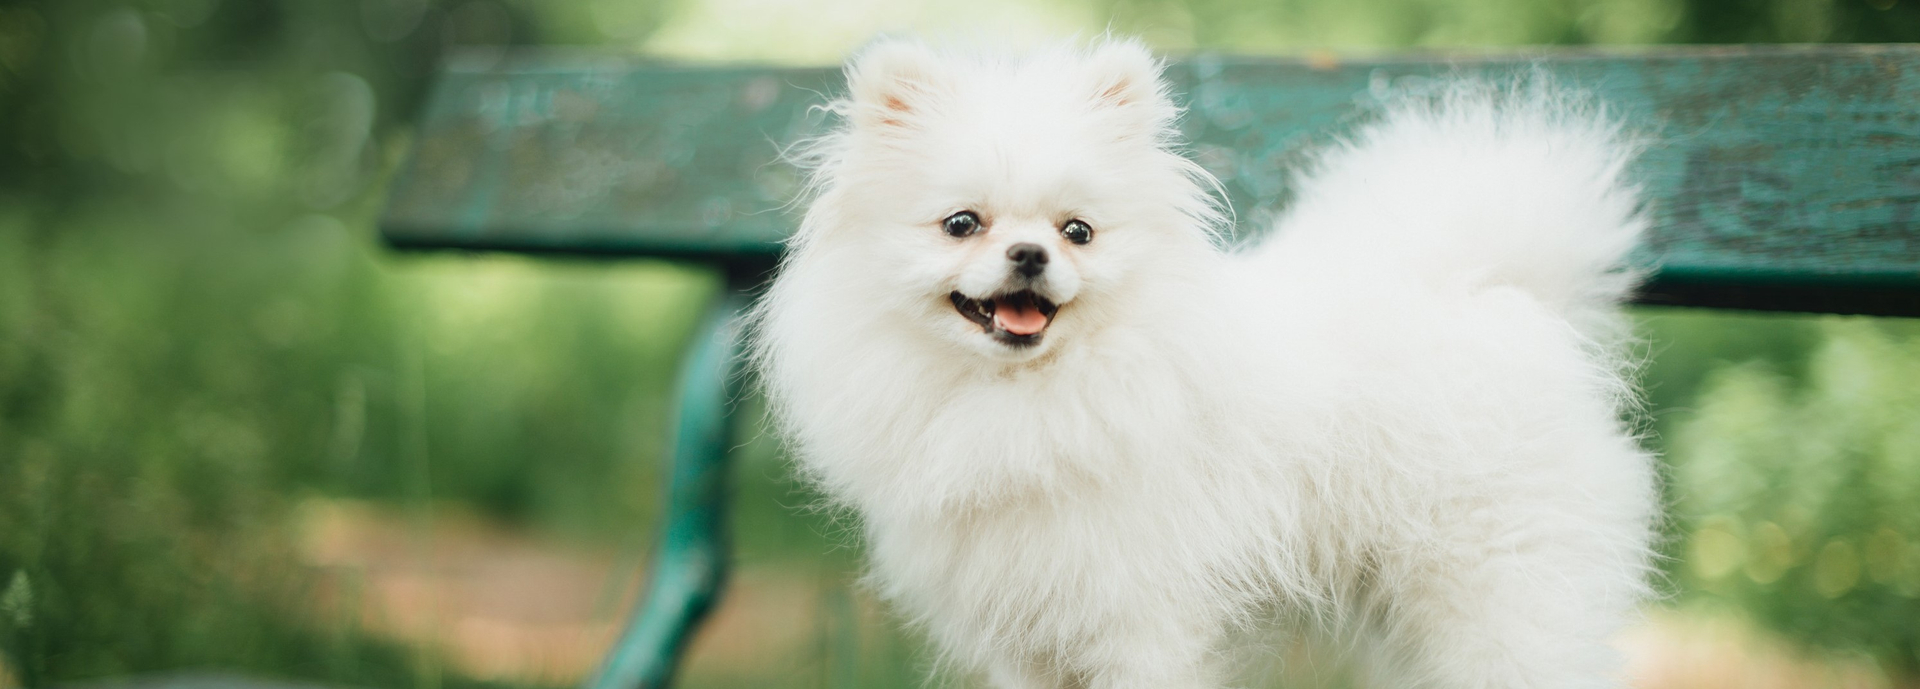 Breed history and appearance of the Pomeranian.